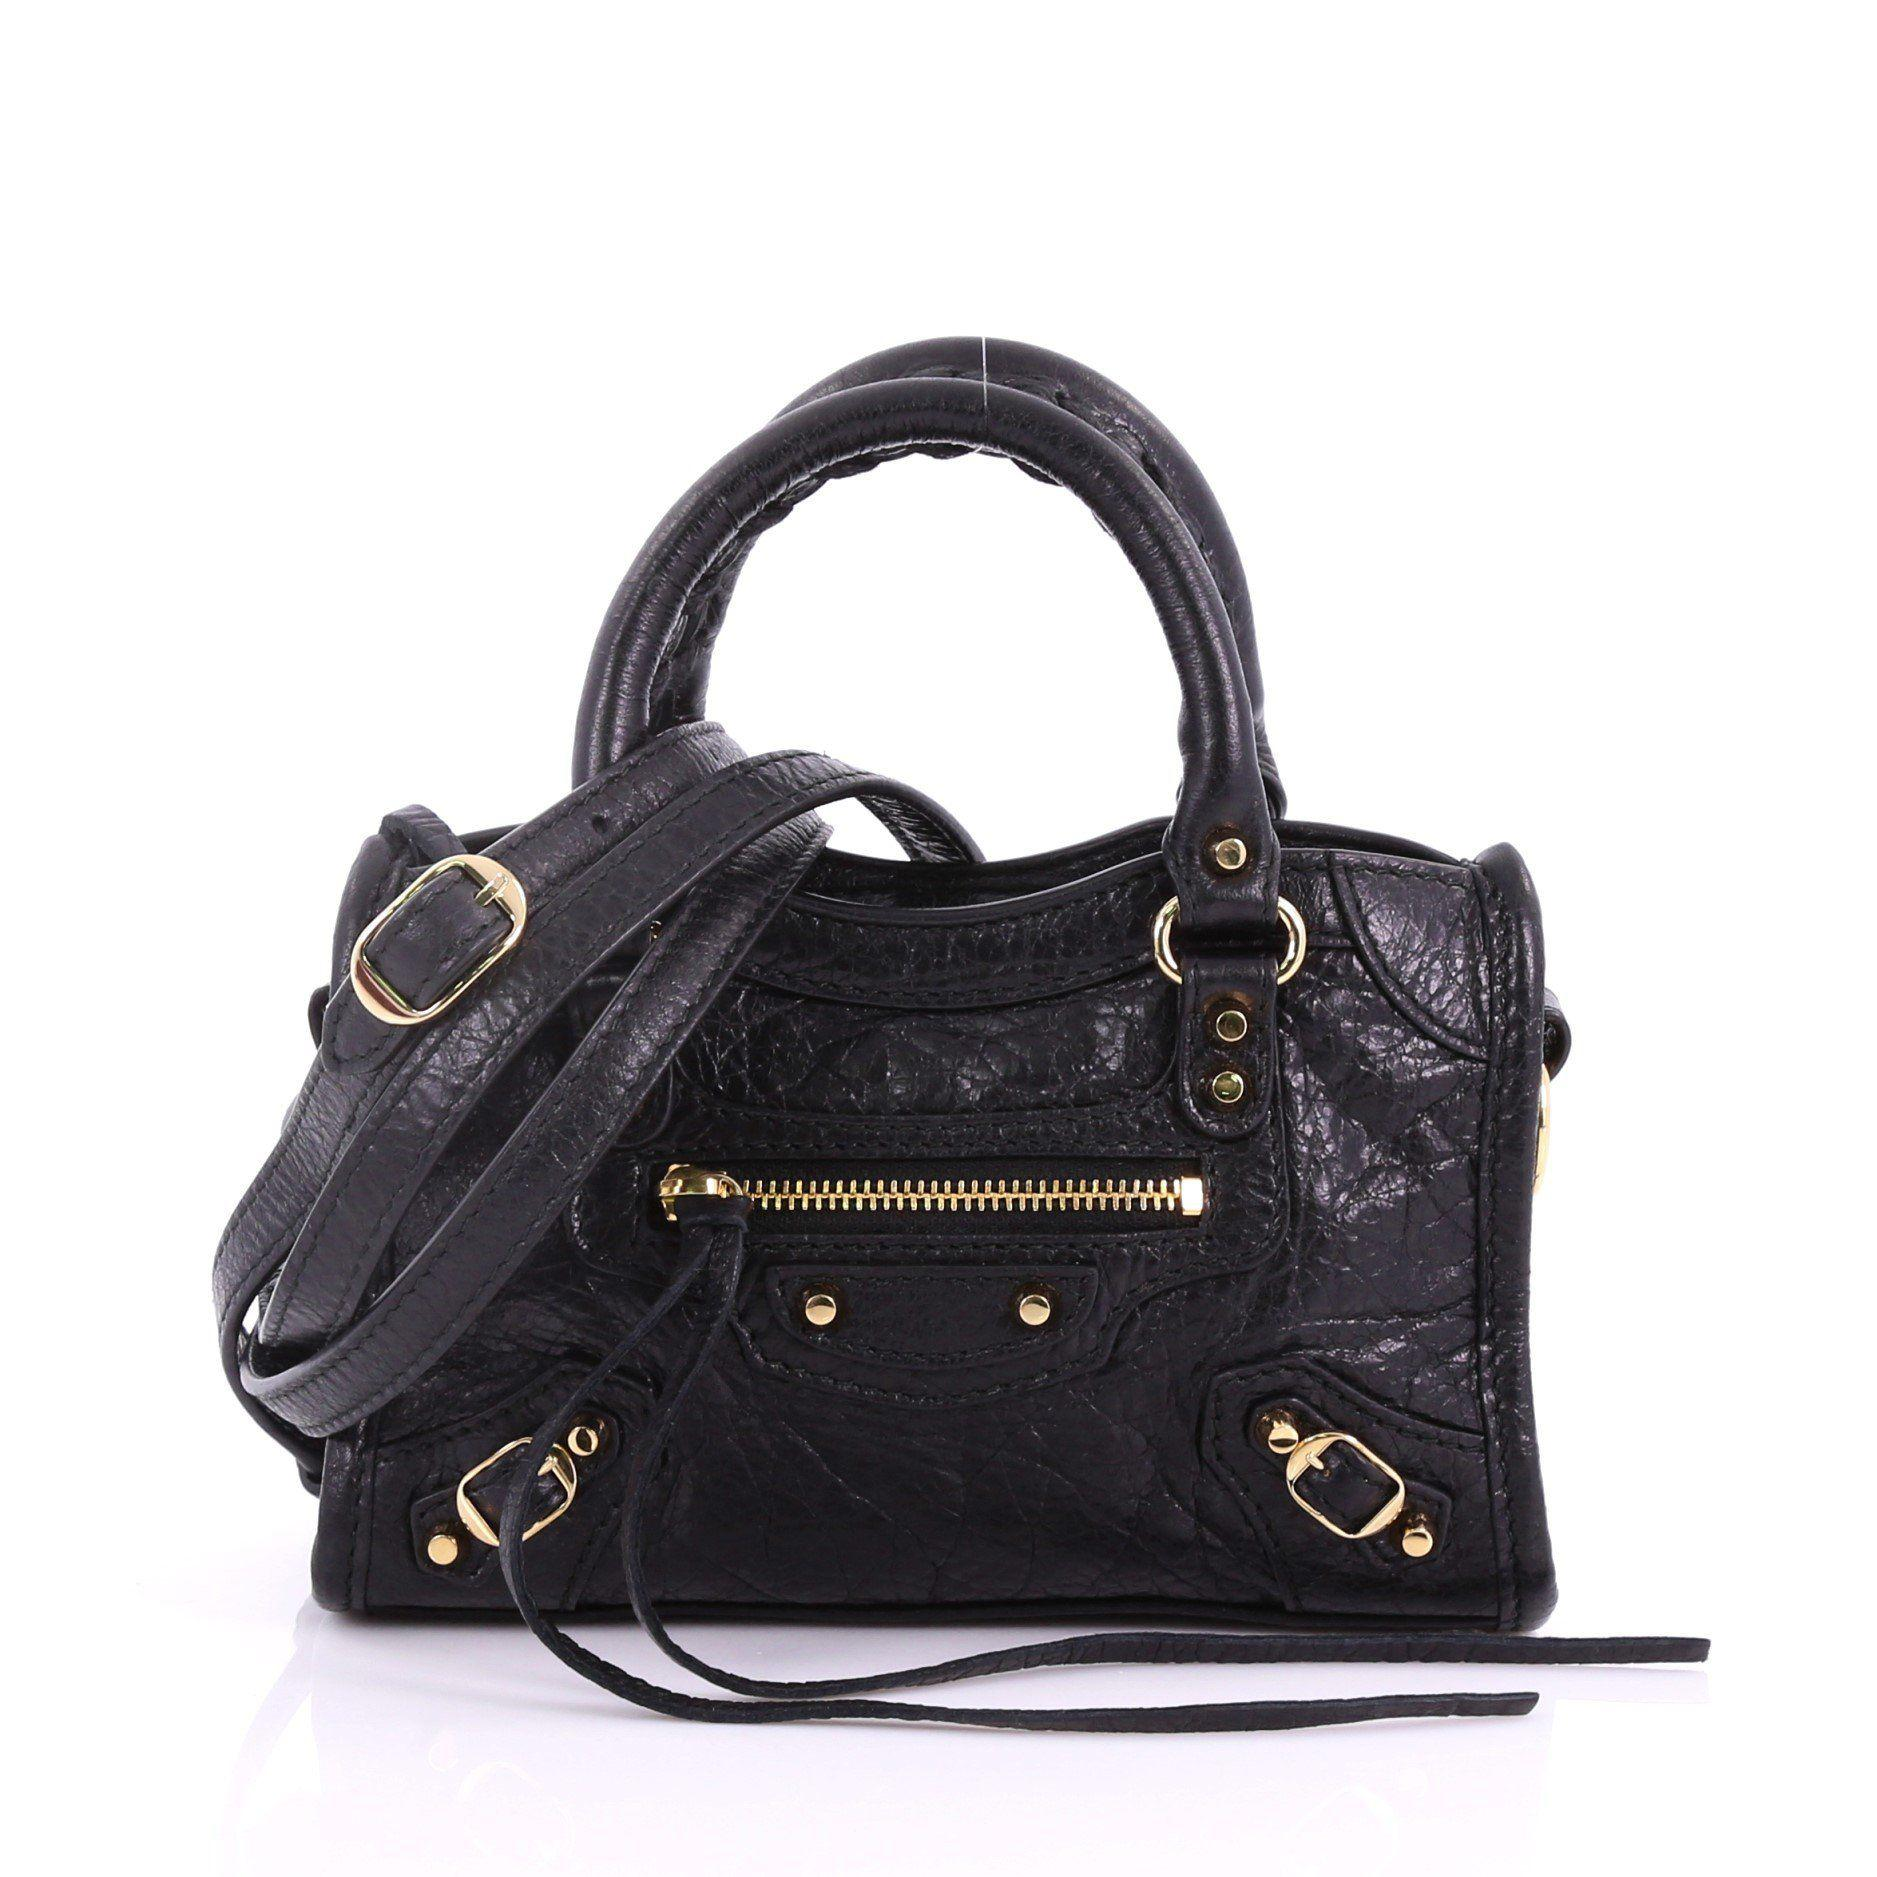 Lyst - Balenciaga Pre Owned City Classic Studs Handbag Leather Nano ... 2195f426315ba